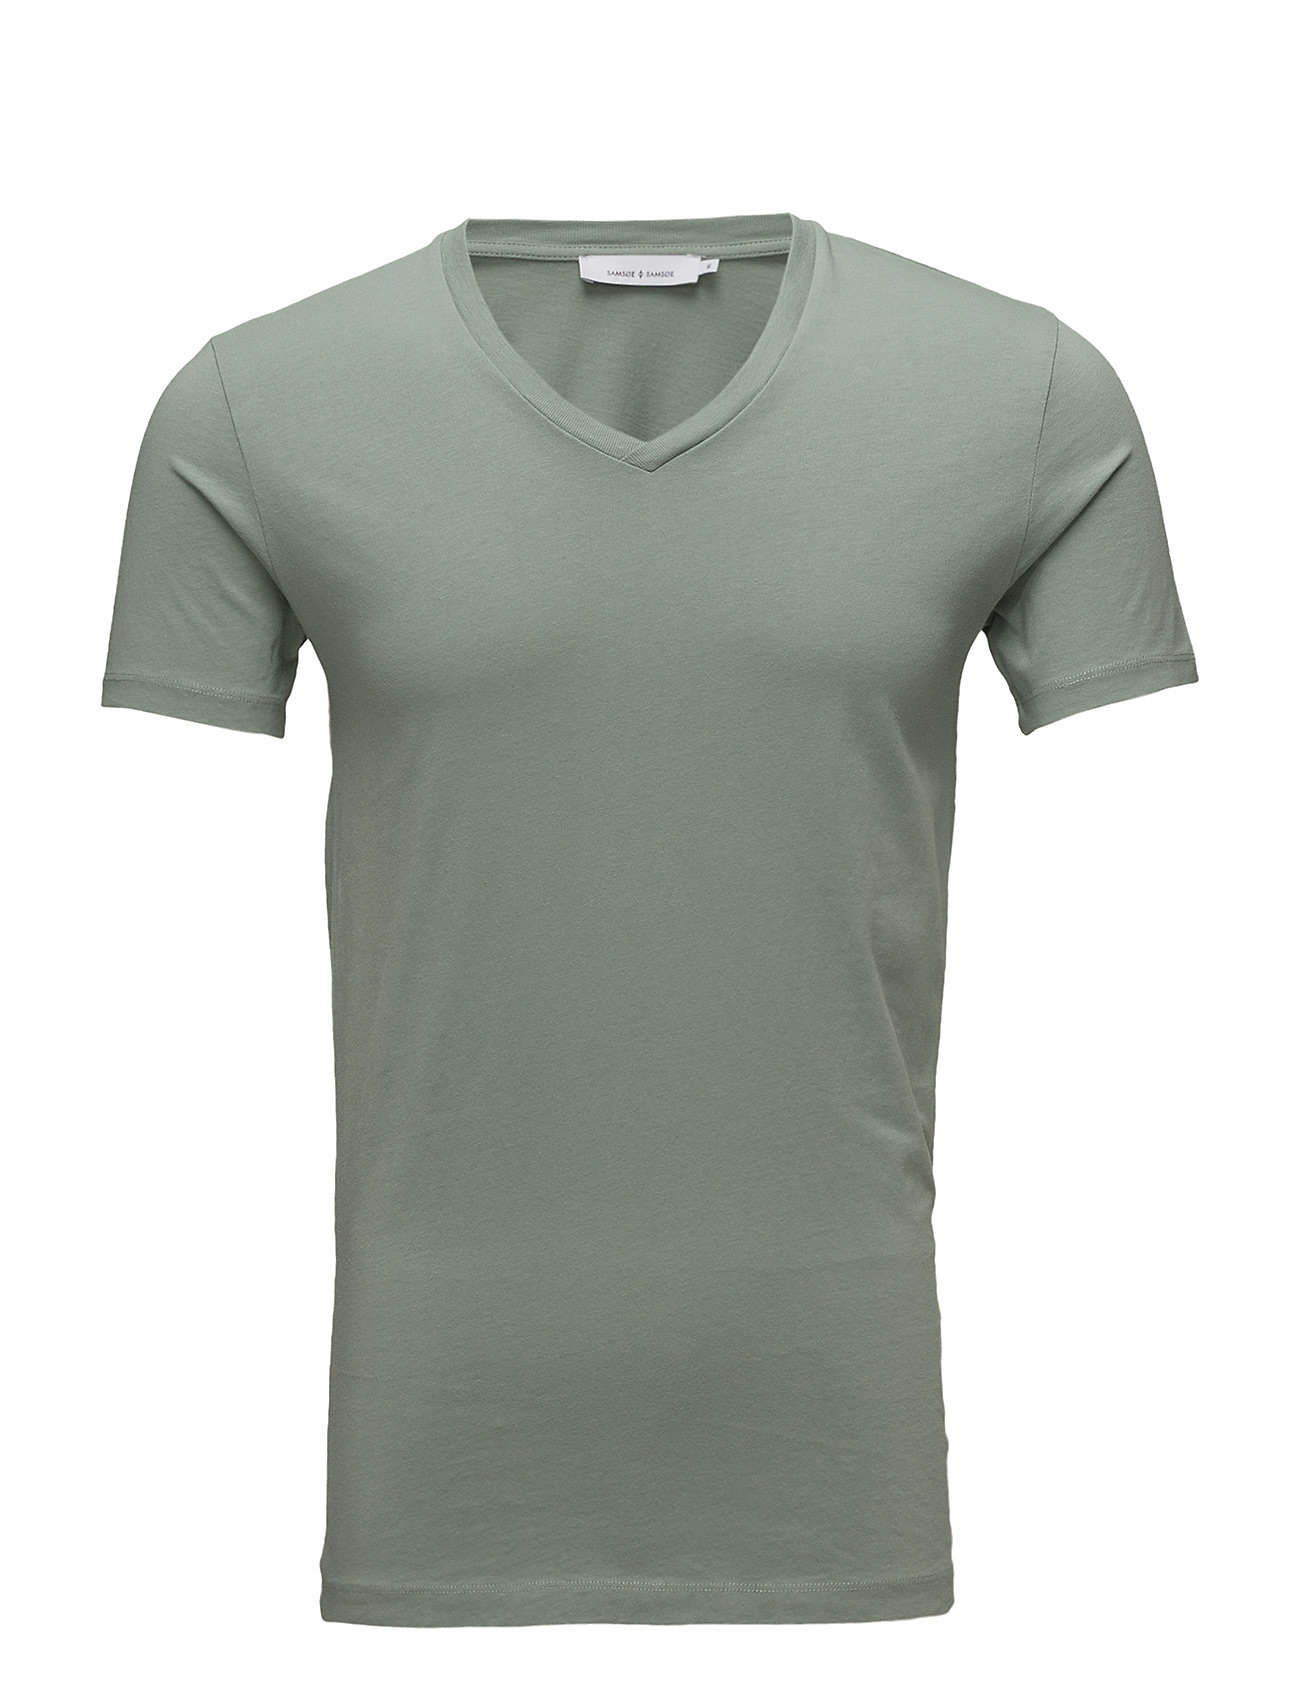 Samsøe & Samsøe MARIAN MALE V-NECK BASIC 273